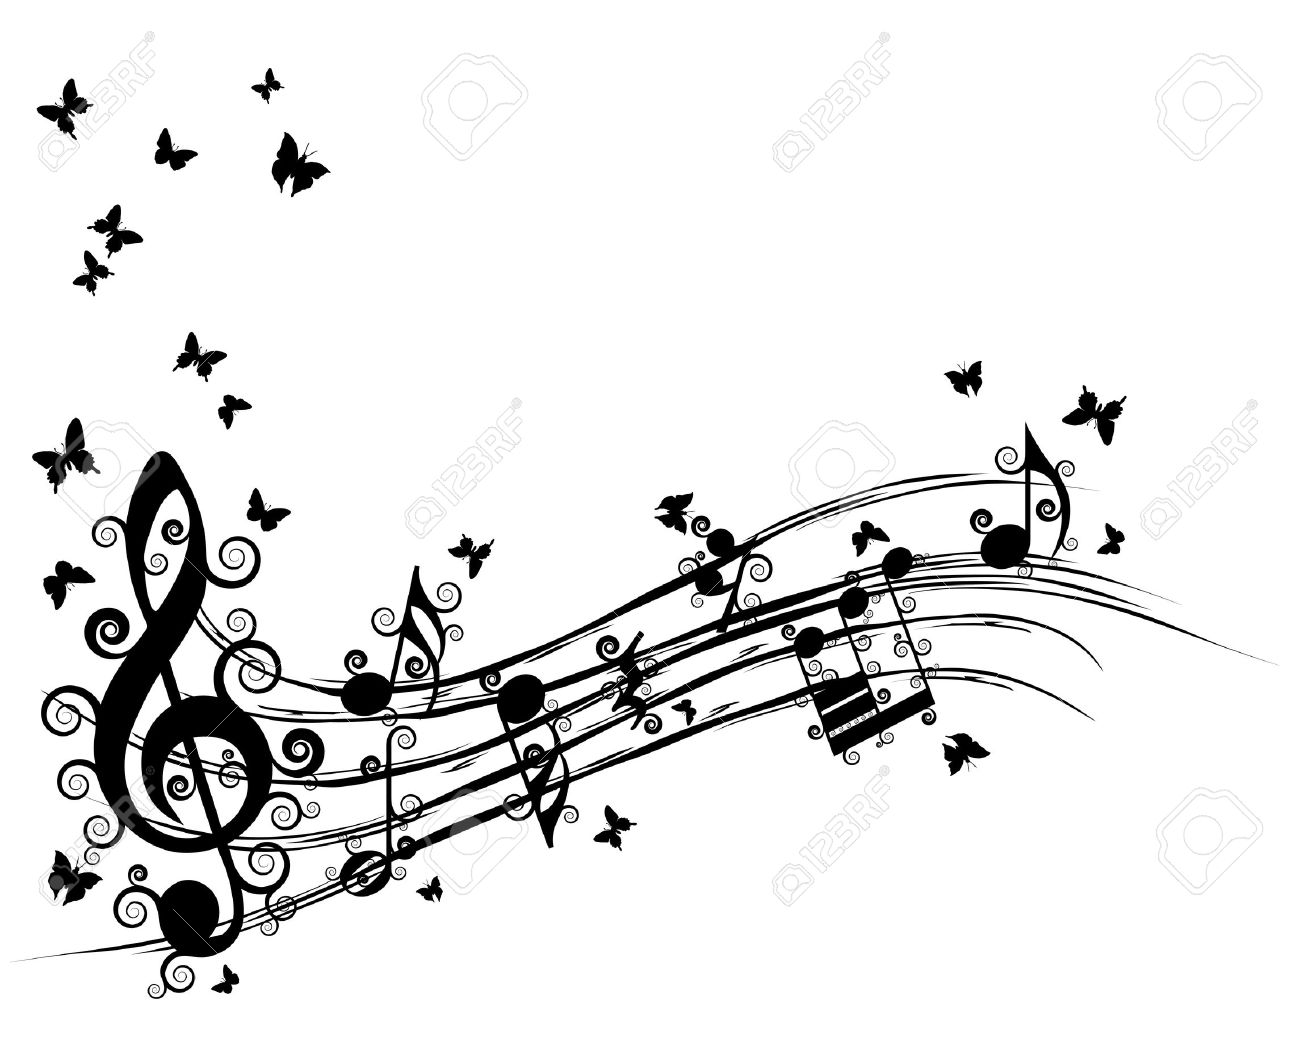 Vector musical notes staff background for design use Stock Vector - 14405214